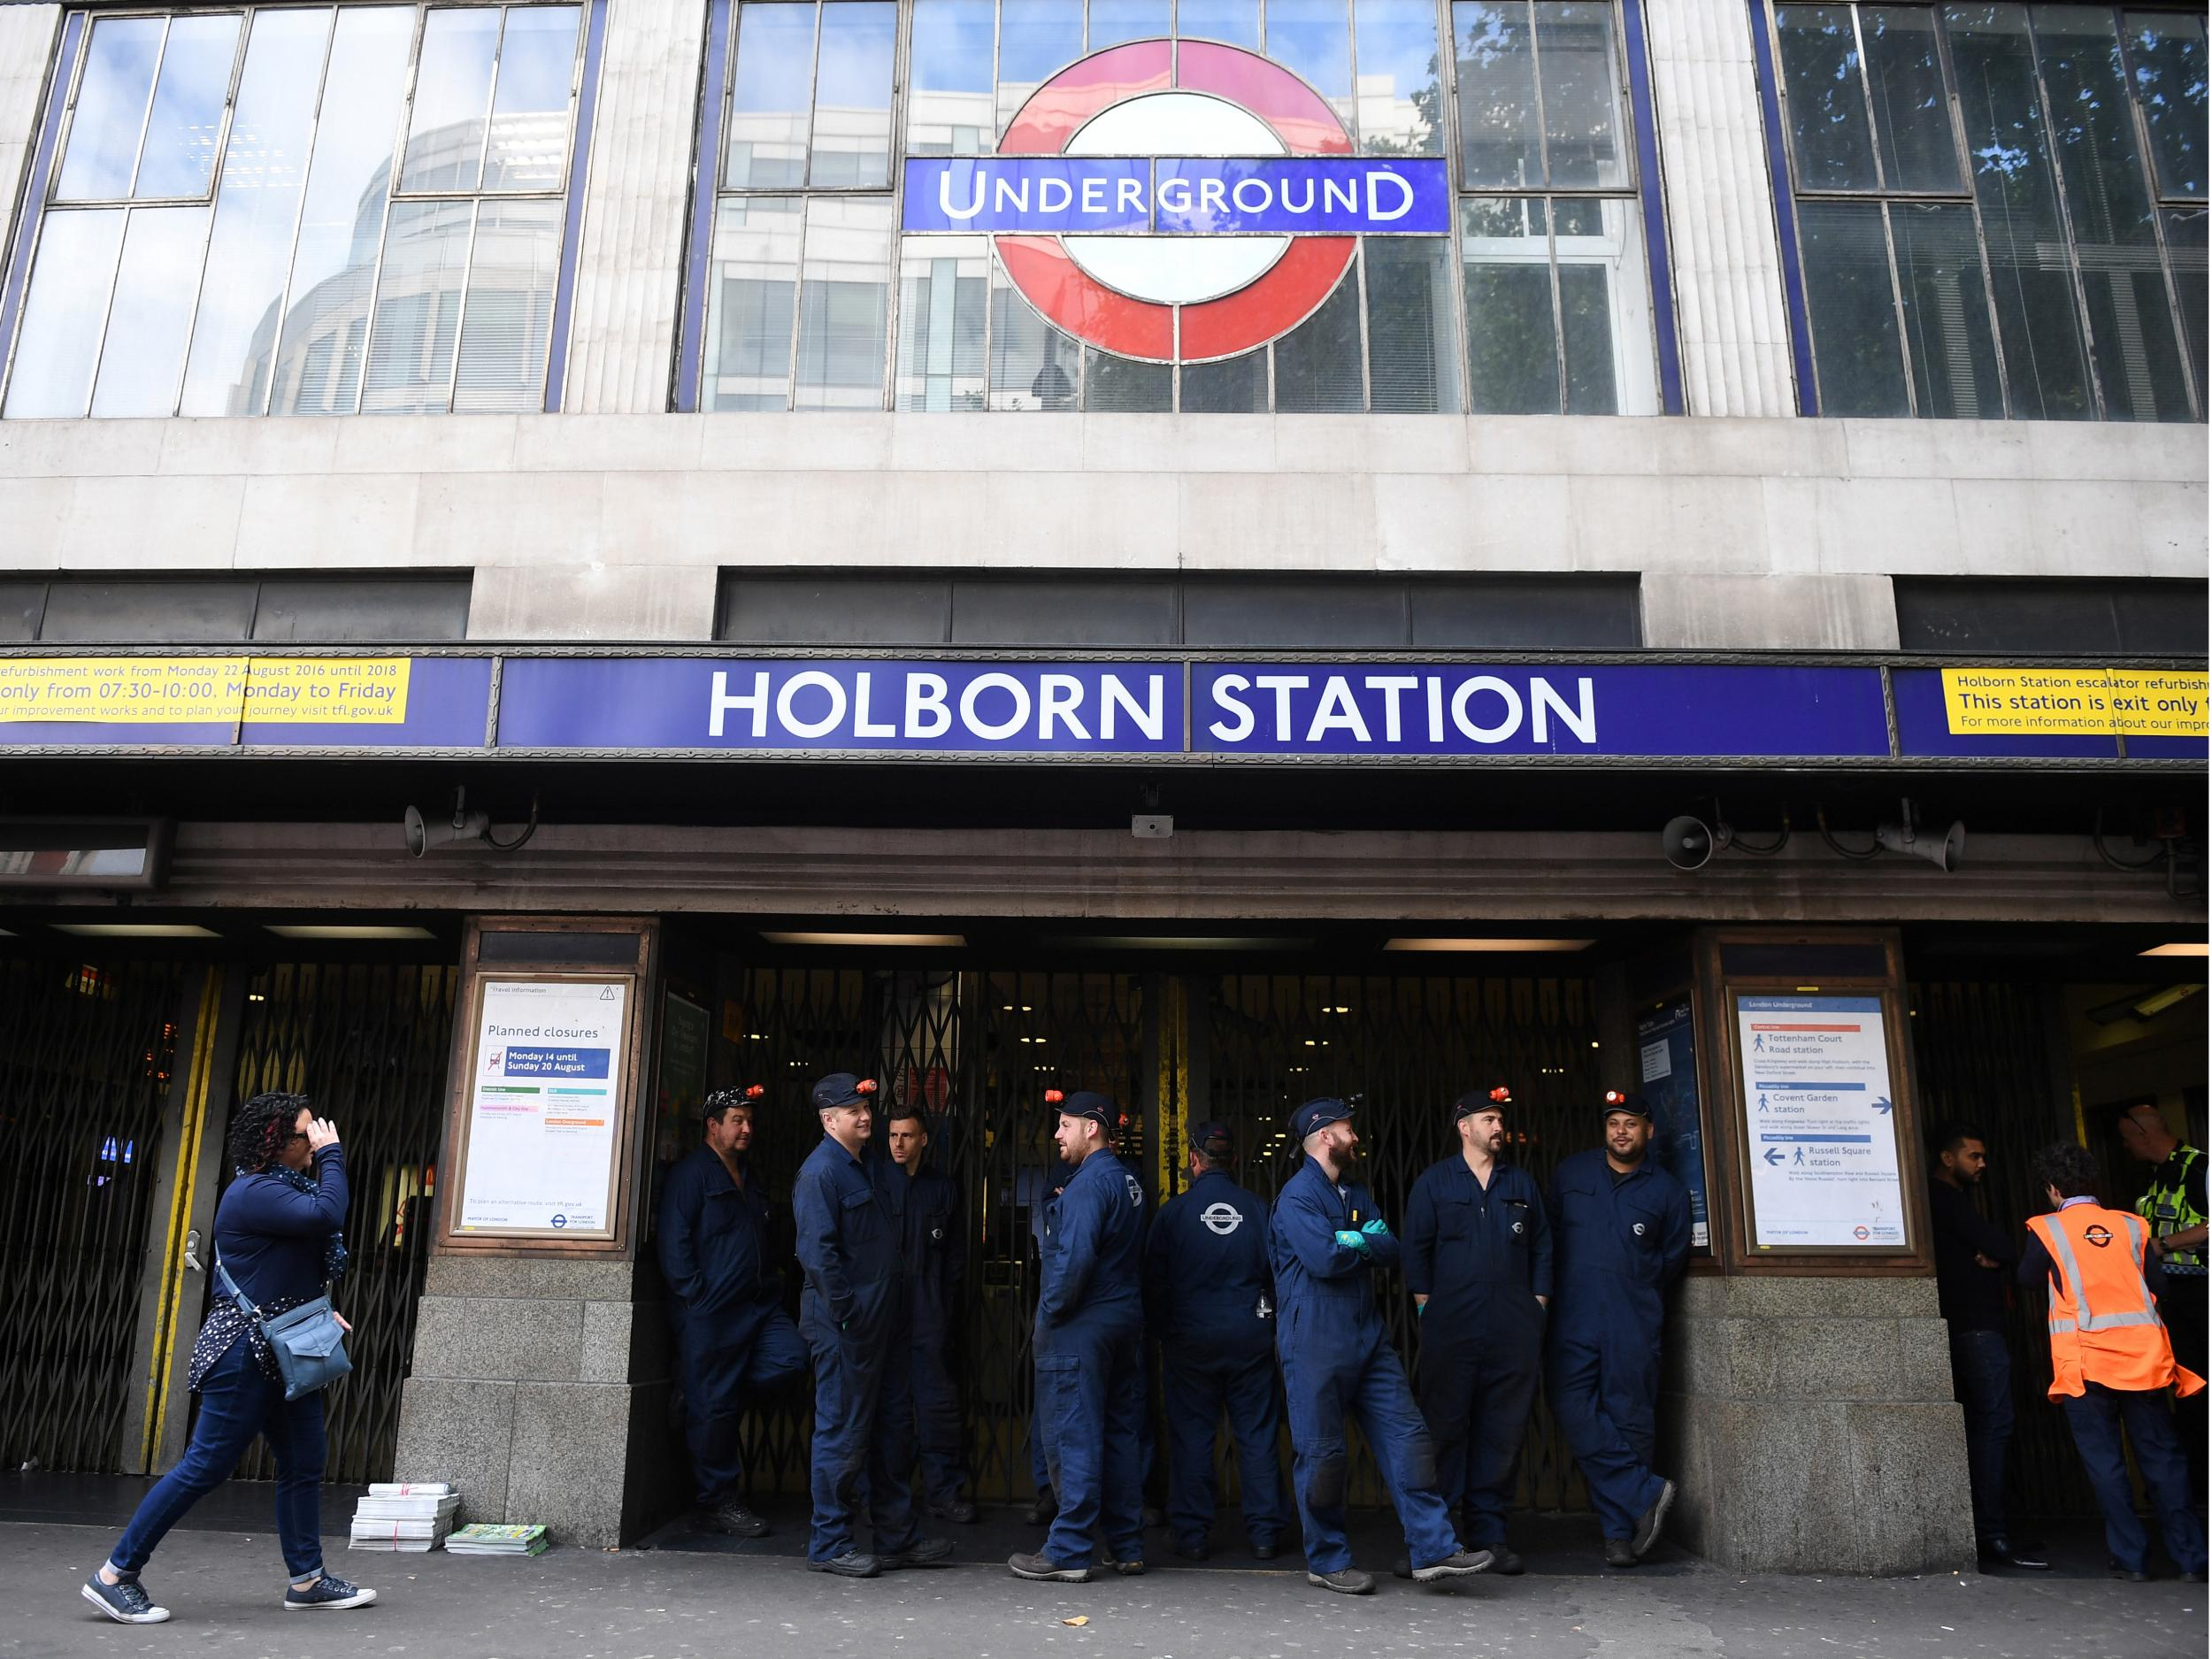 Man Run Over By Hundreds Of Tube Trains After Staff Mistook Body 027 Switches On Acc Power Will This Work O Gauge Railroading For Fox The Independent